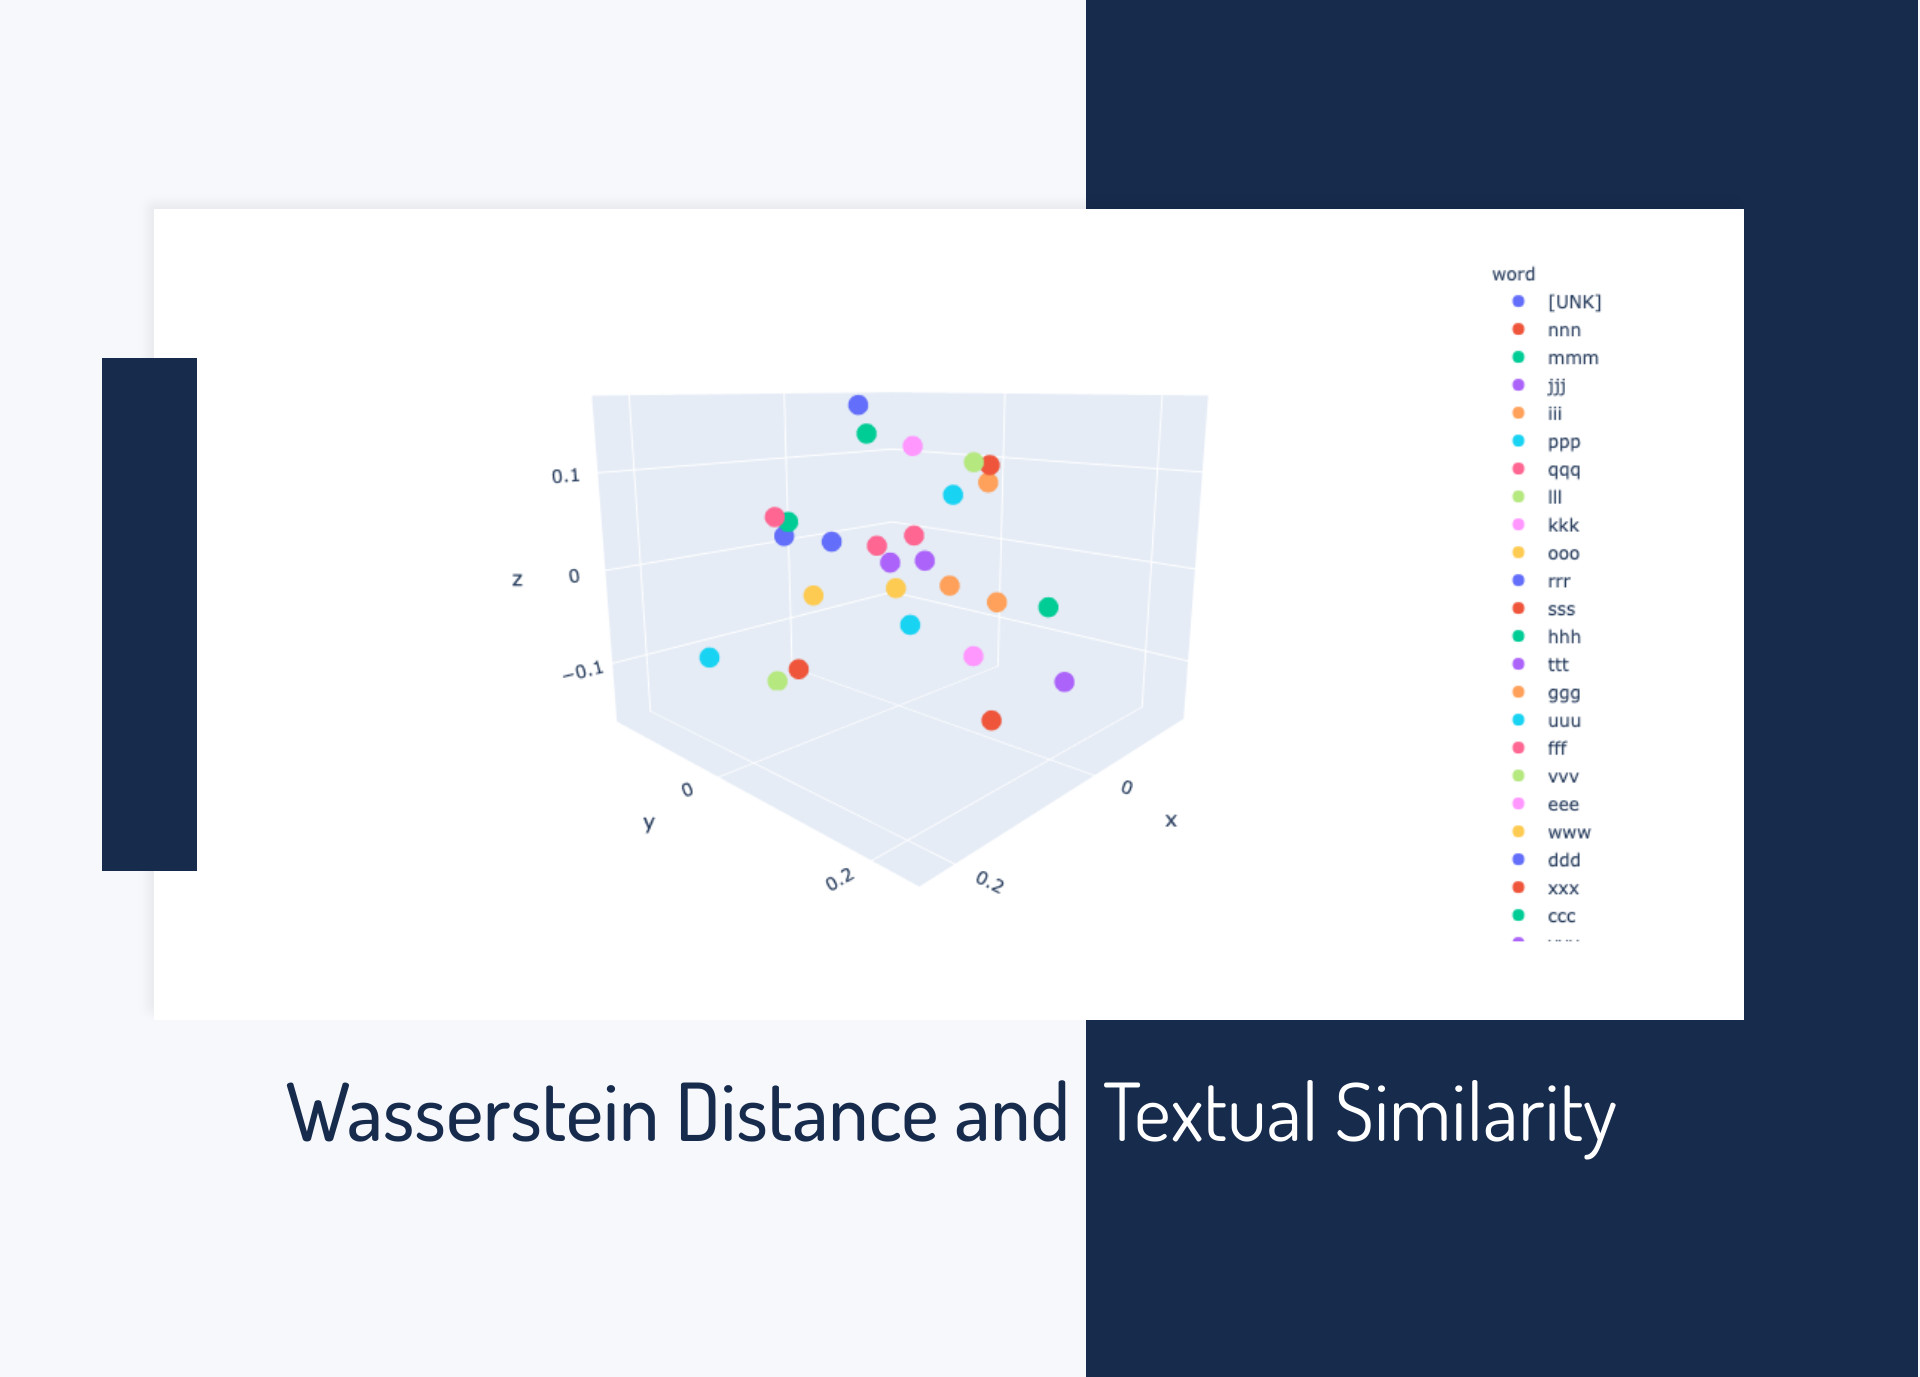 Wasserstein Distance and Textual Similarity